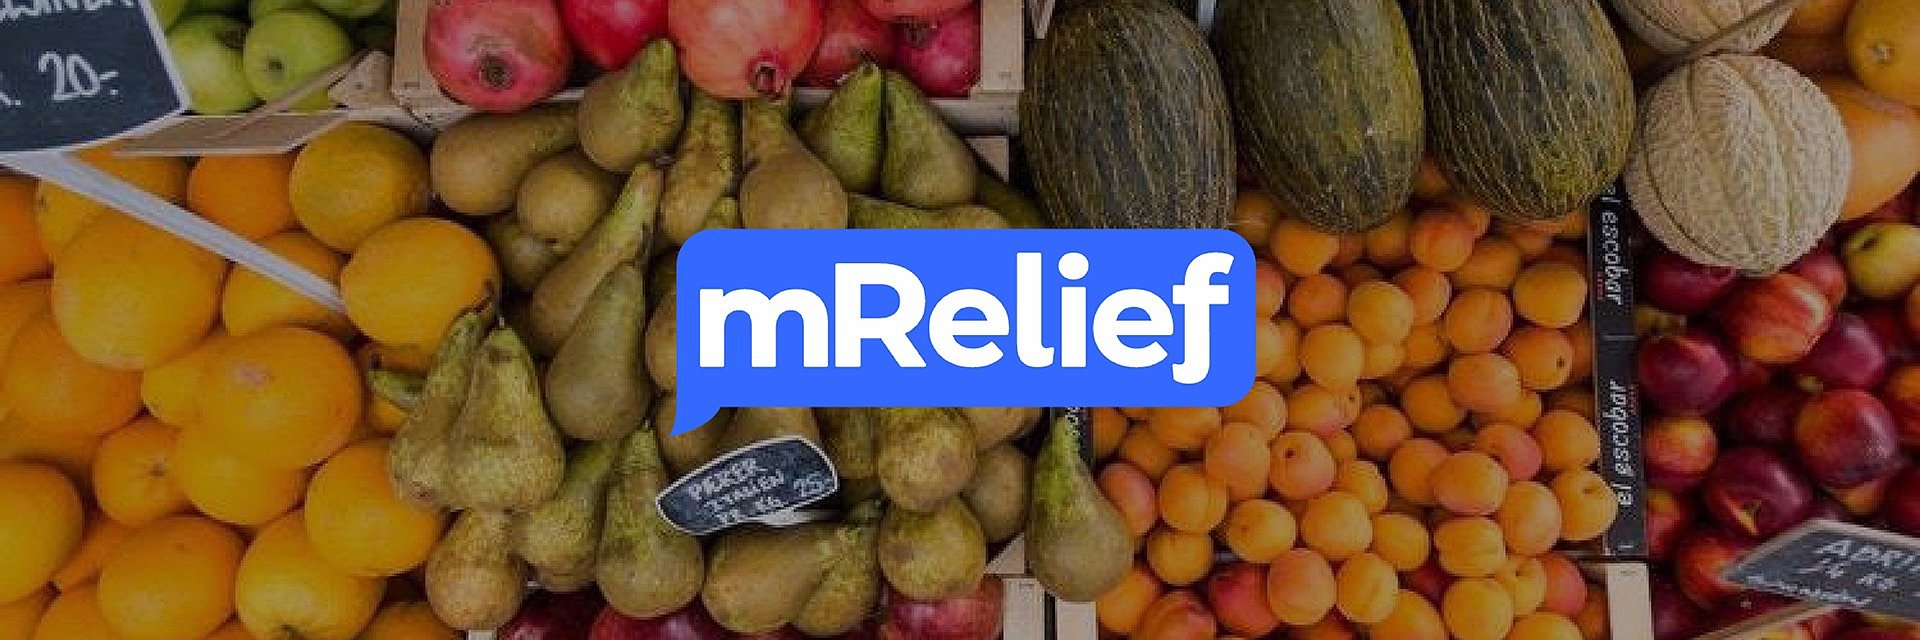 Access Ventures Grants $350,000 to Chicago-Based mRelief for Phase II of Reconstruct Challenge; Startup Helping Fight Hunger in Midwest